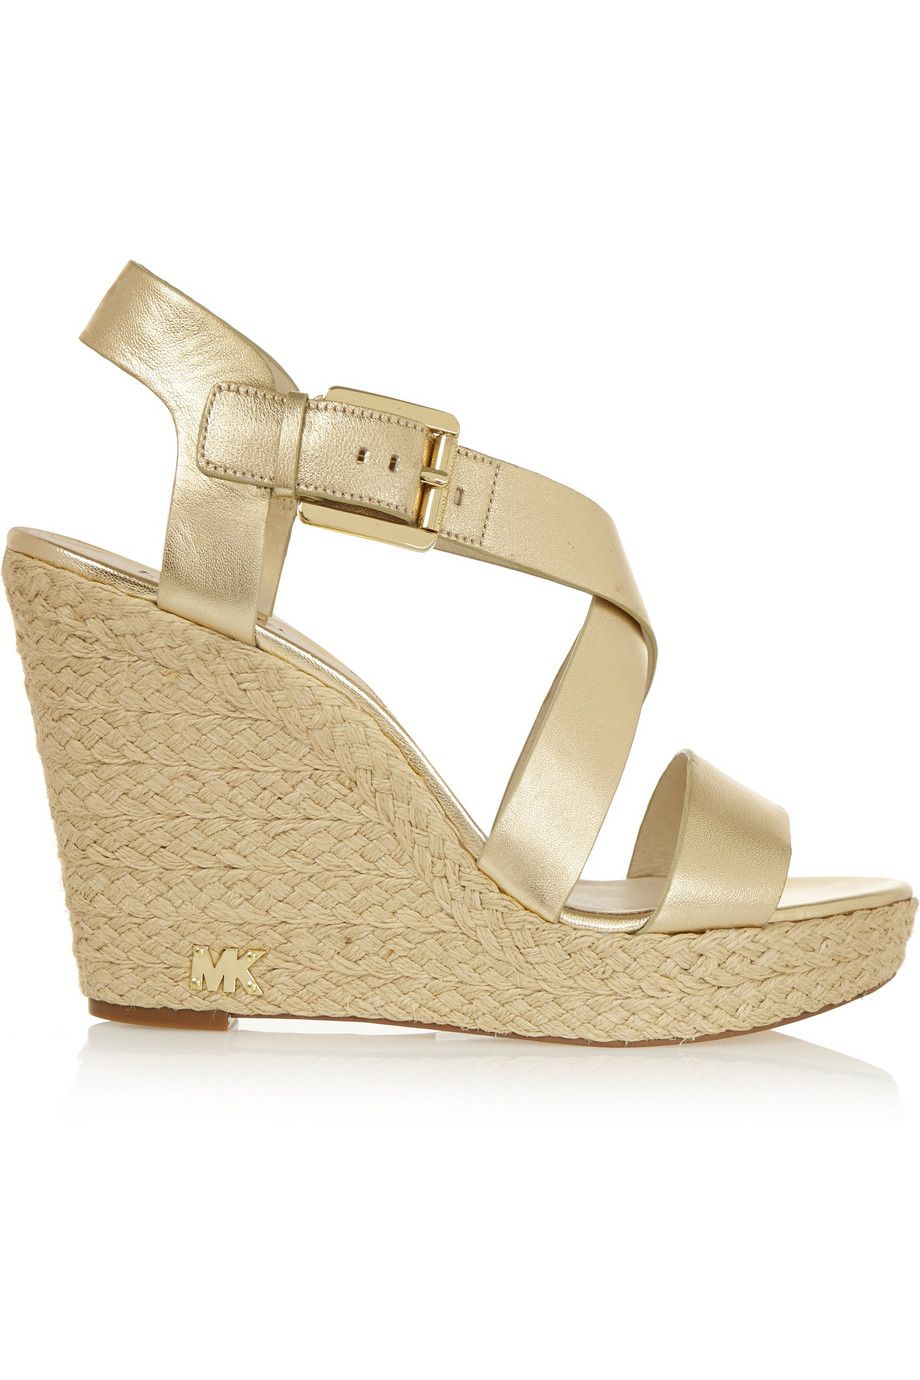 db1c22f9af9 MICHAEL Michael Kors Giovanna metallic leather espadrille wedge ...